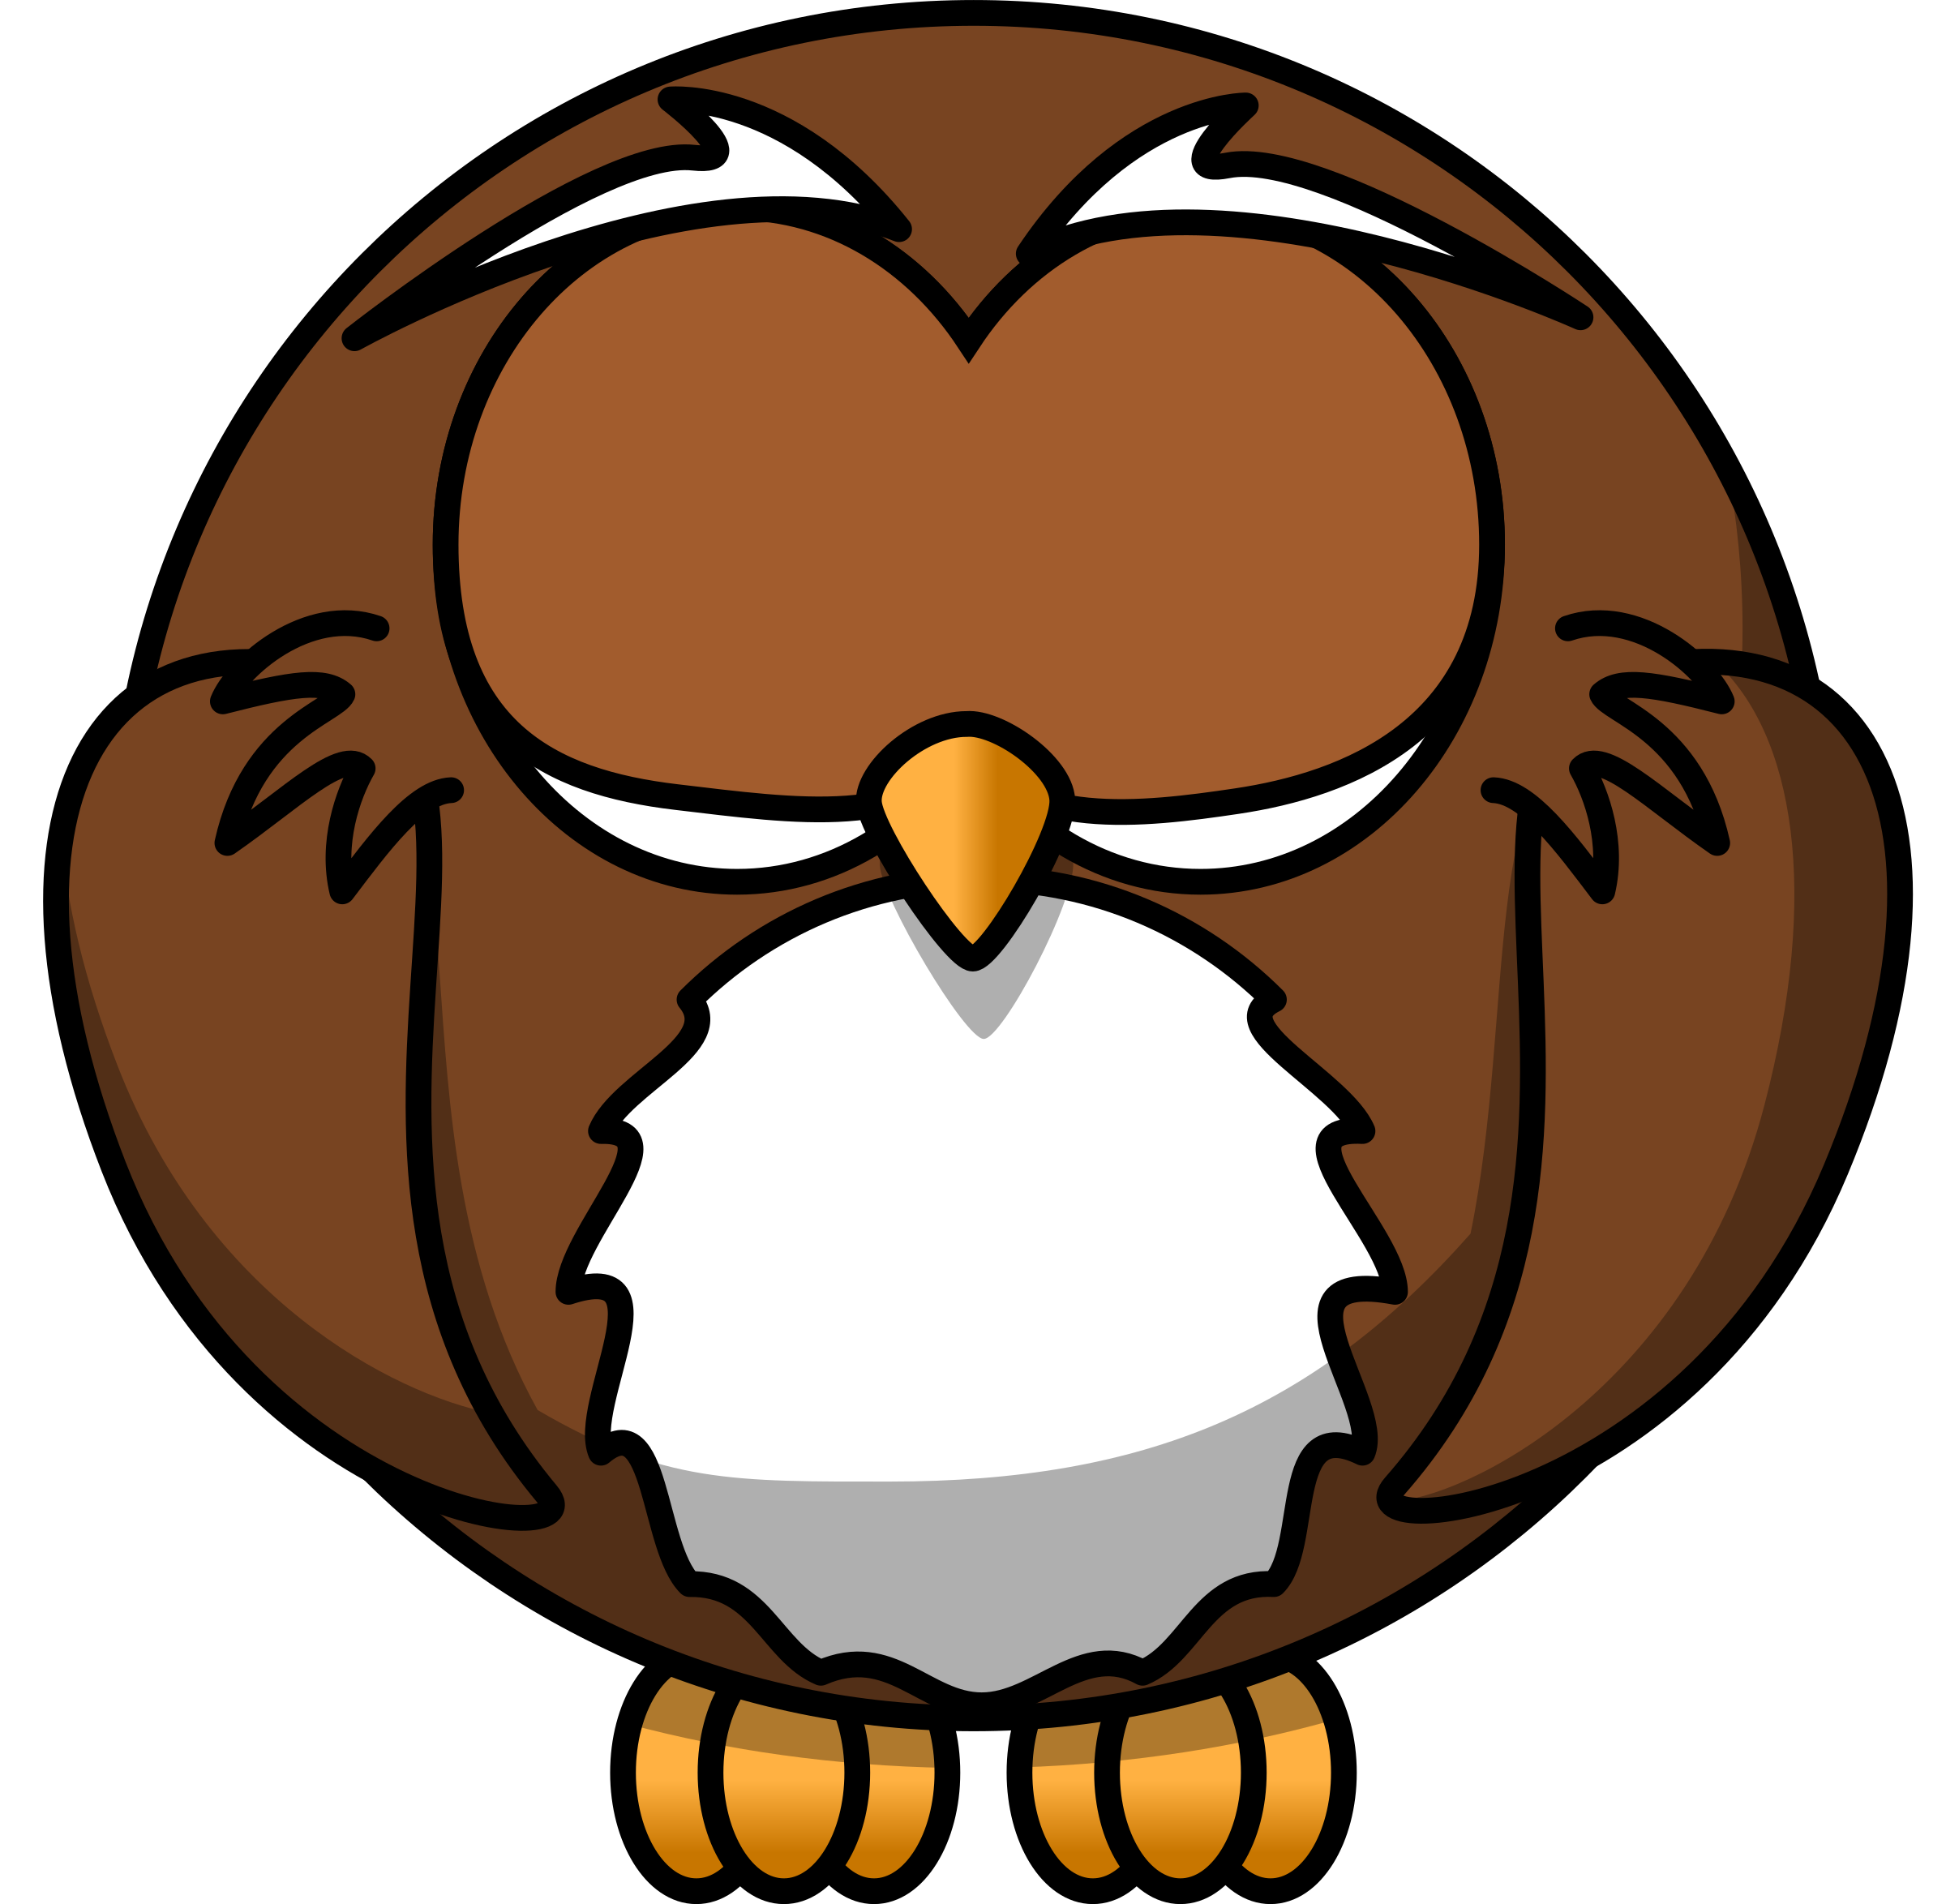 Cartoon owl png. Asleep icons free and